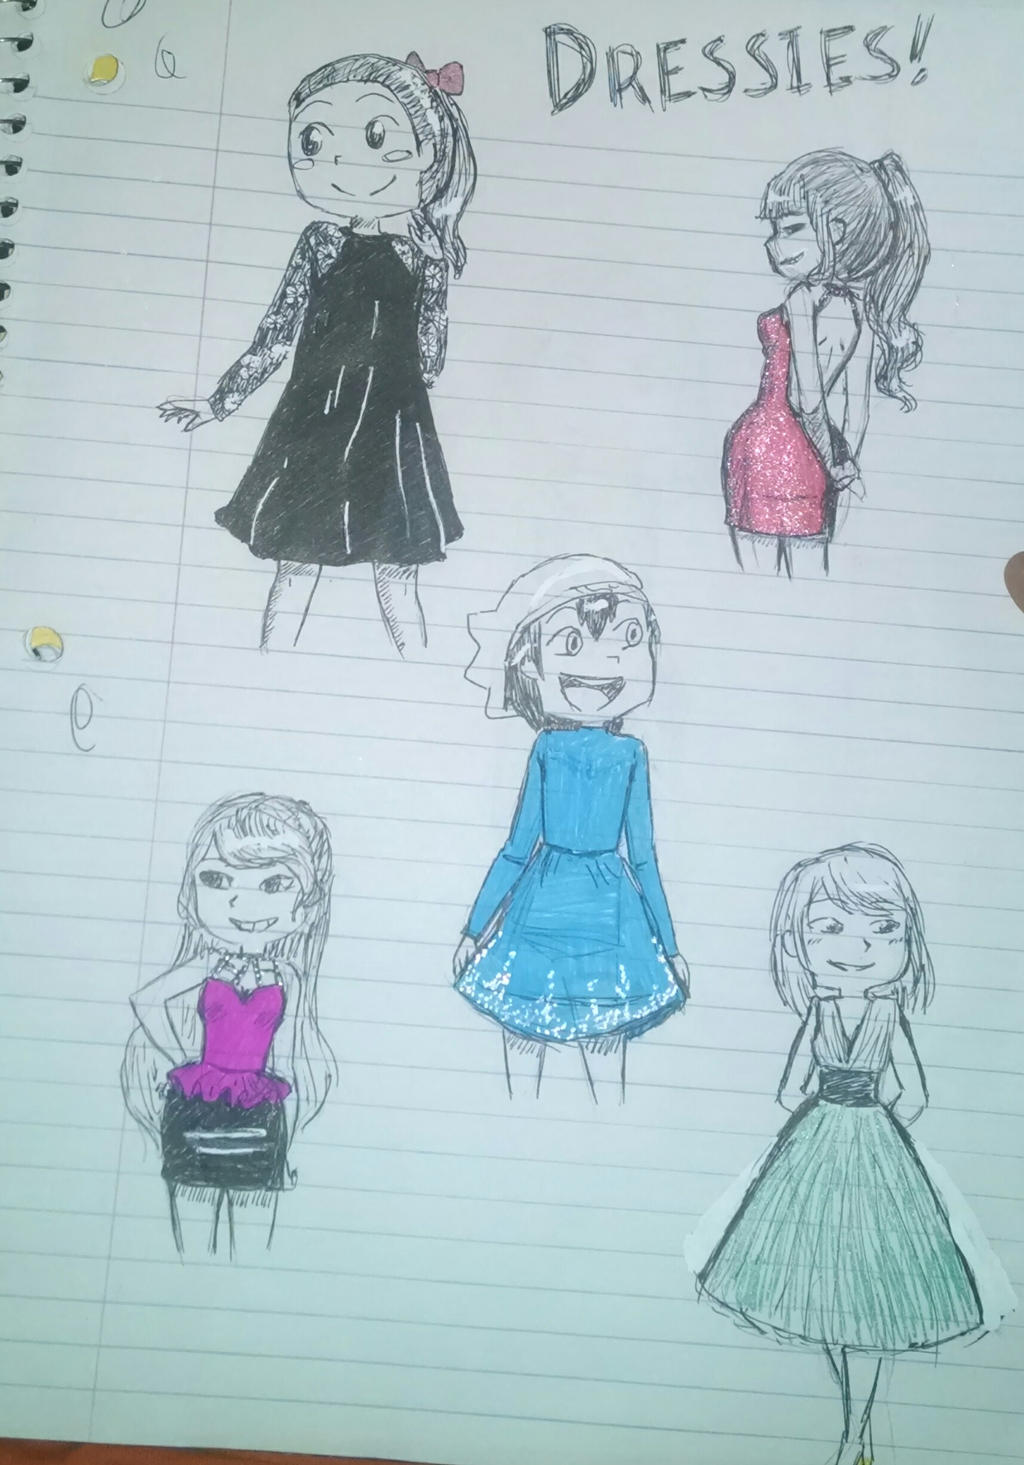 consolation dresses by MeowMix72